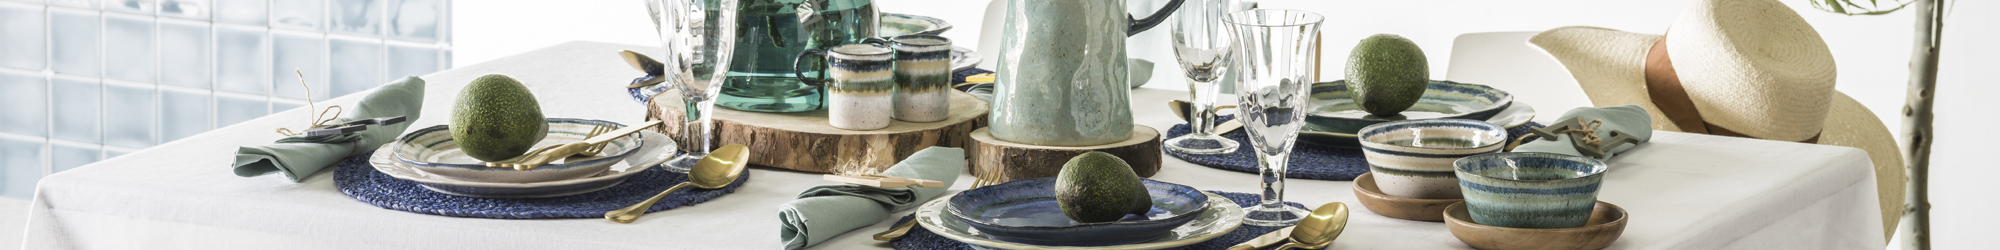 Casafina Sausalito Dinnerware Collection